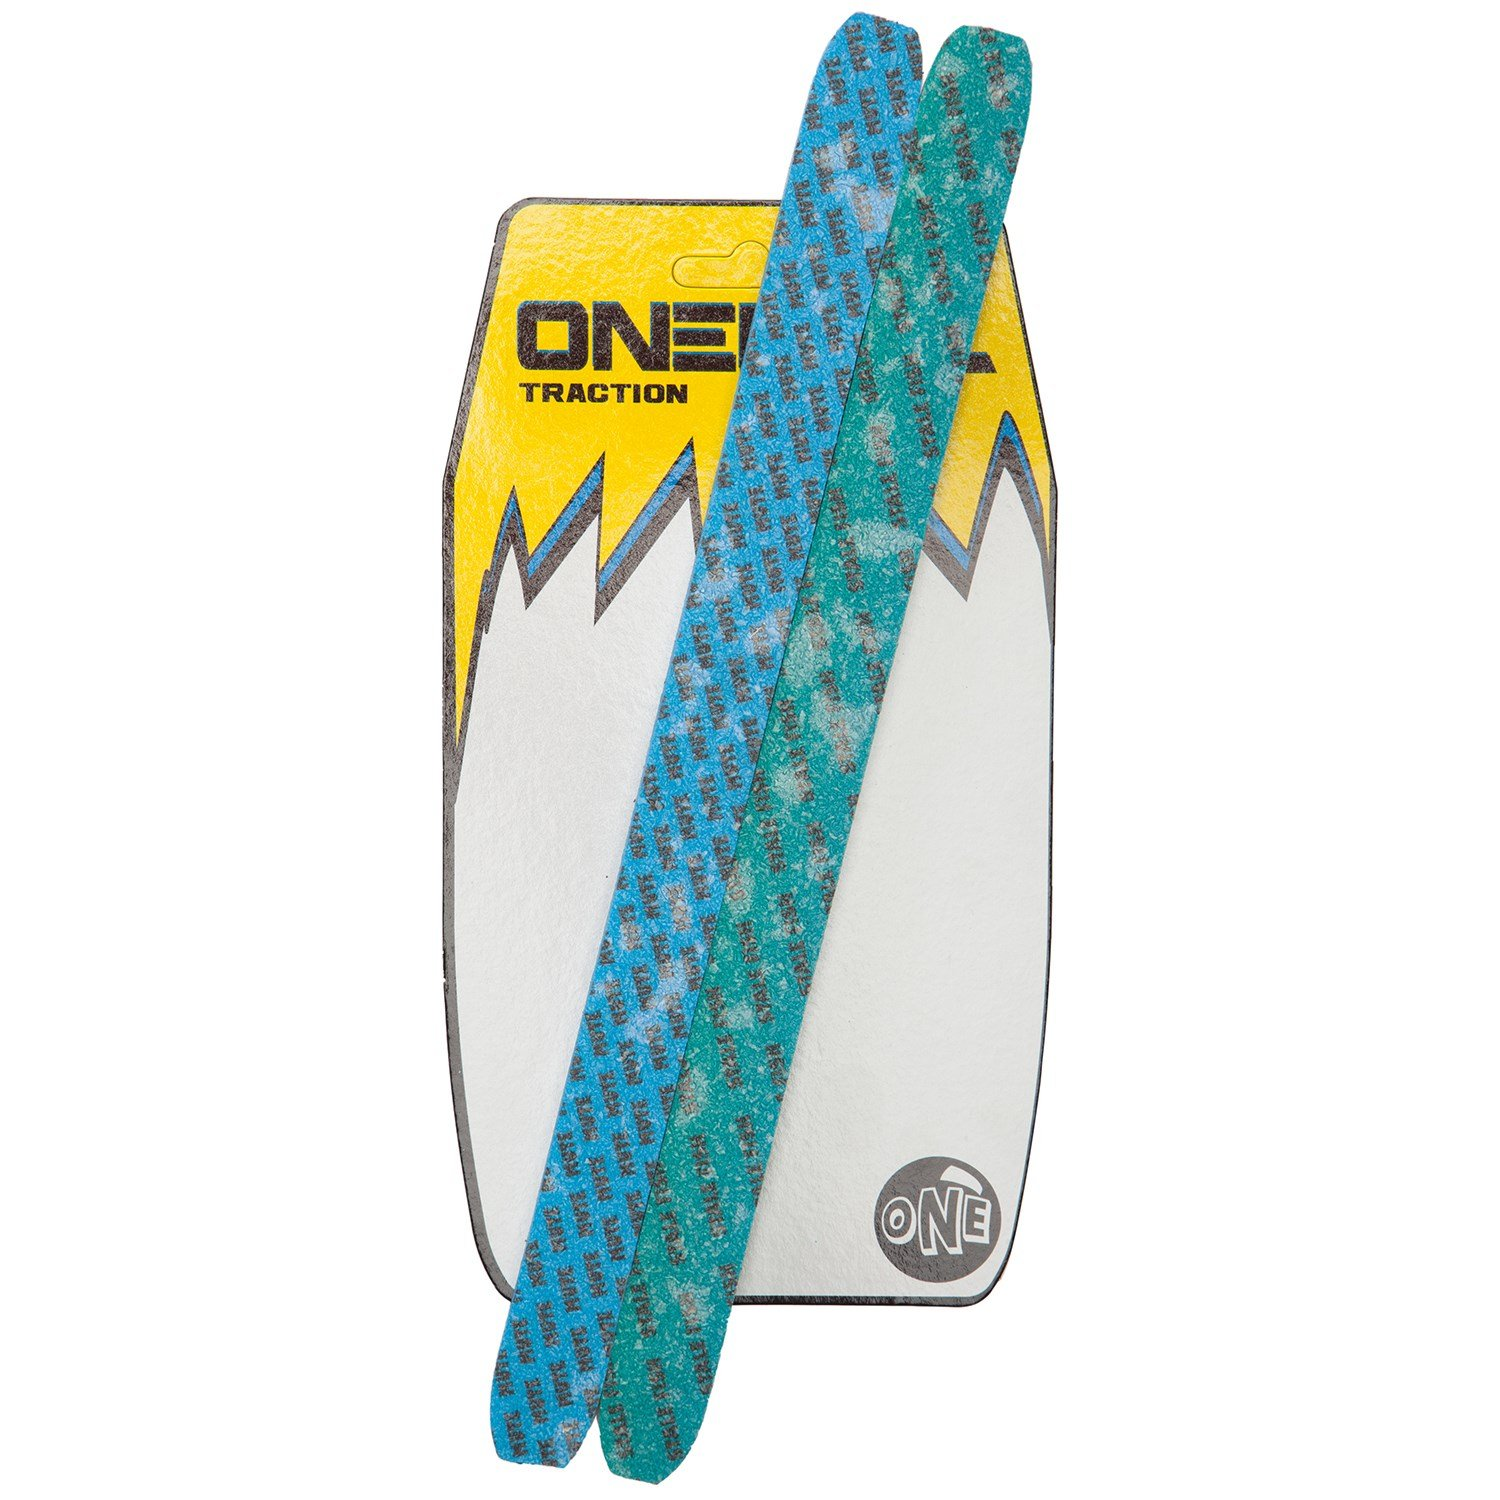 ONEBALL Traction Pad MUTE/STALE FISH